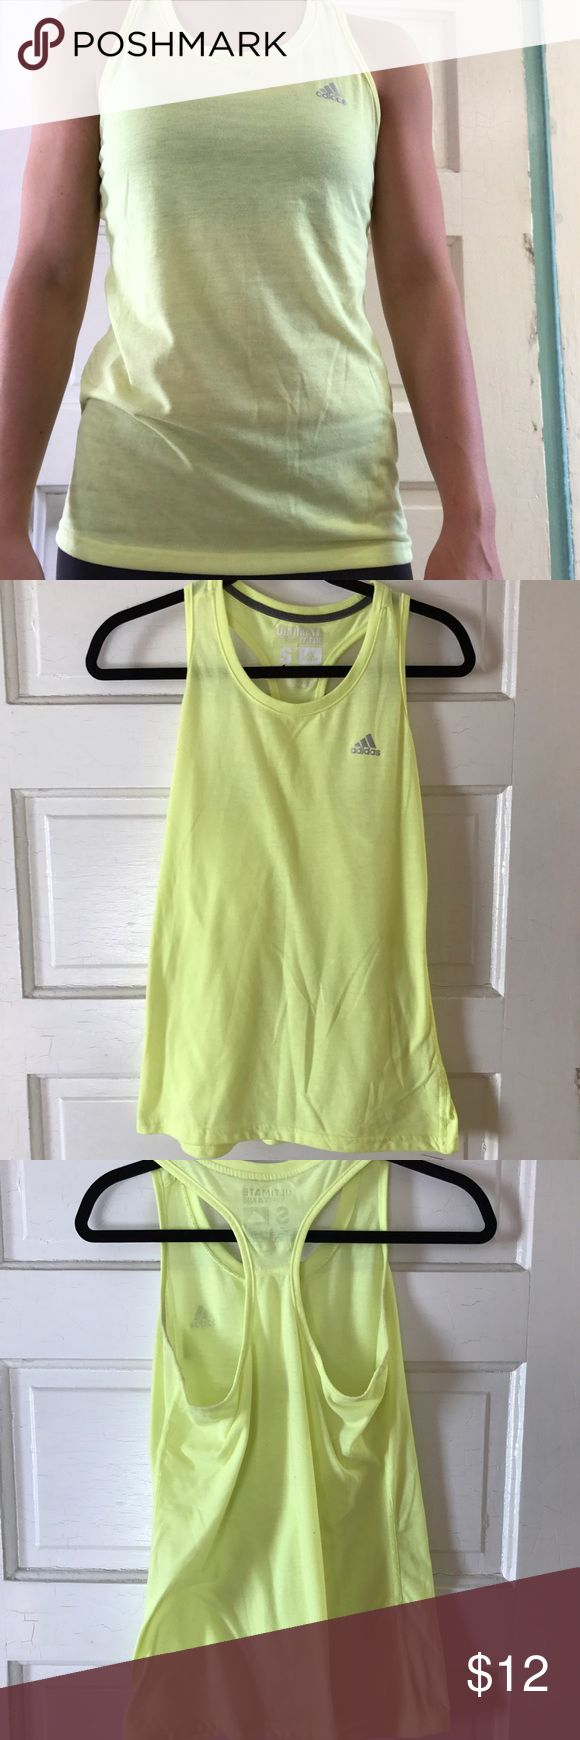 Adidas Neon Yellow Tank The neon yellow T-back tank has been loved but needs a new home! There are some arm pit stains that are hardly noticeable.                             • Fun Bright color  • Light Weight  • 1-2 day shipping Adidas Tops Tank Tops